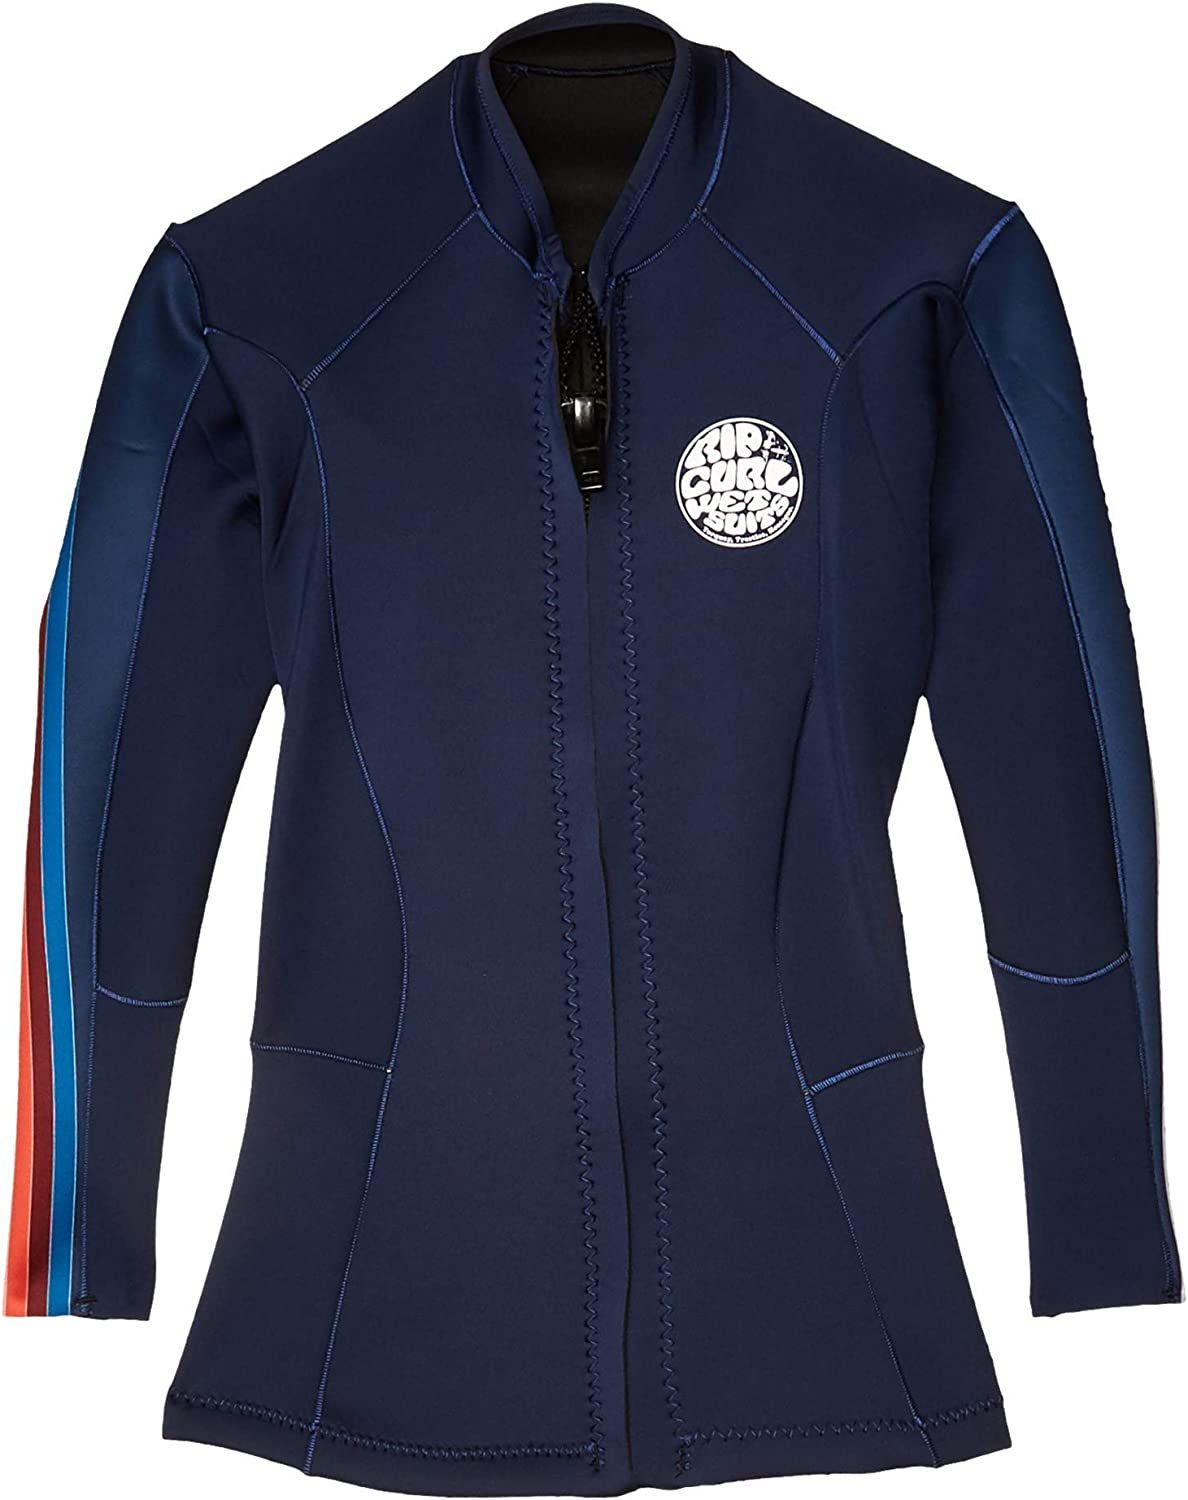 Rip Curl Womens Dawn Patrol 1.5mm Neoprene Wetsuit Coat Jacket - Stripe - Easy Stretch - Made Using 1-1.5mm Thickness